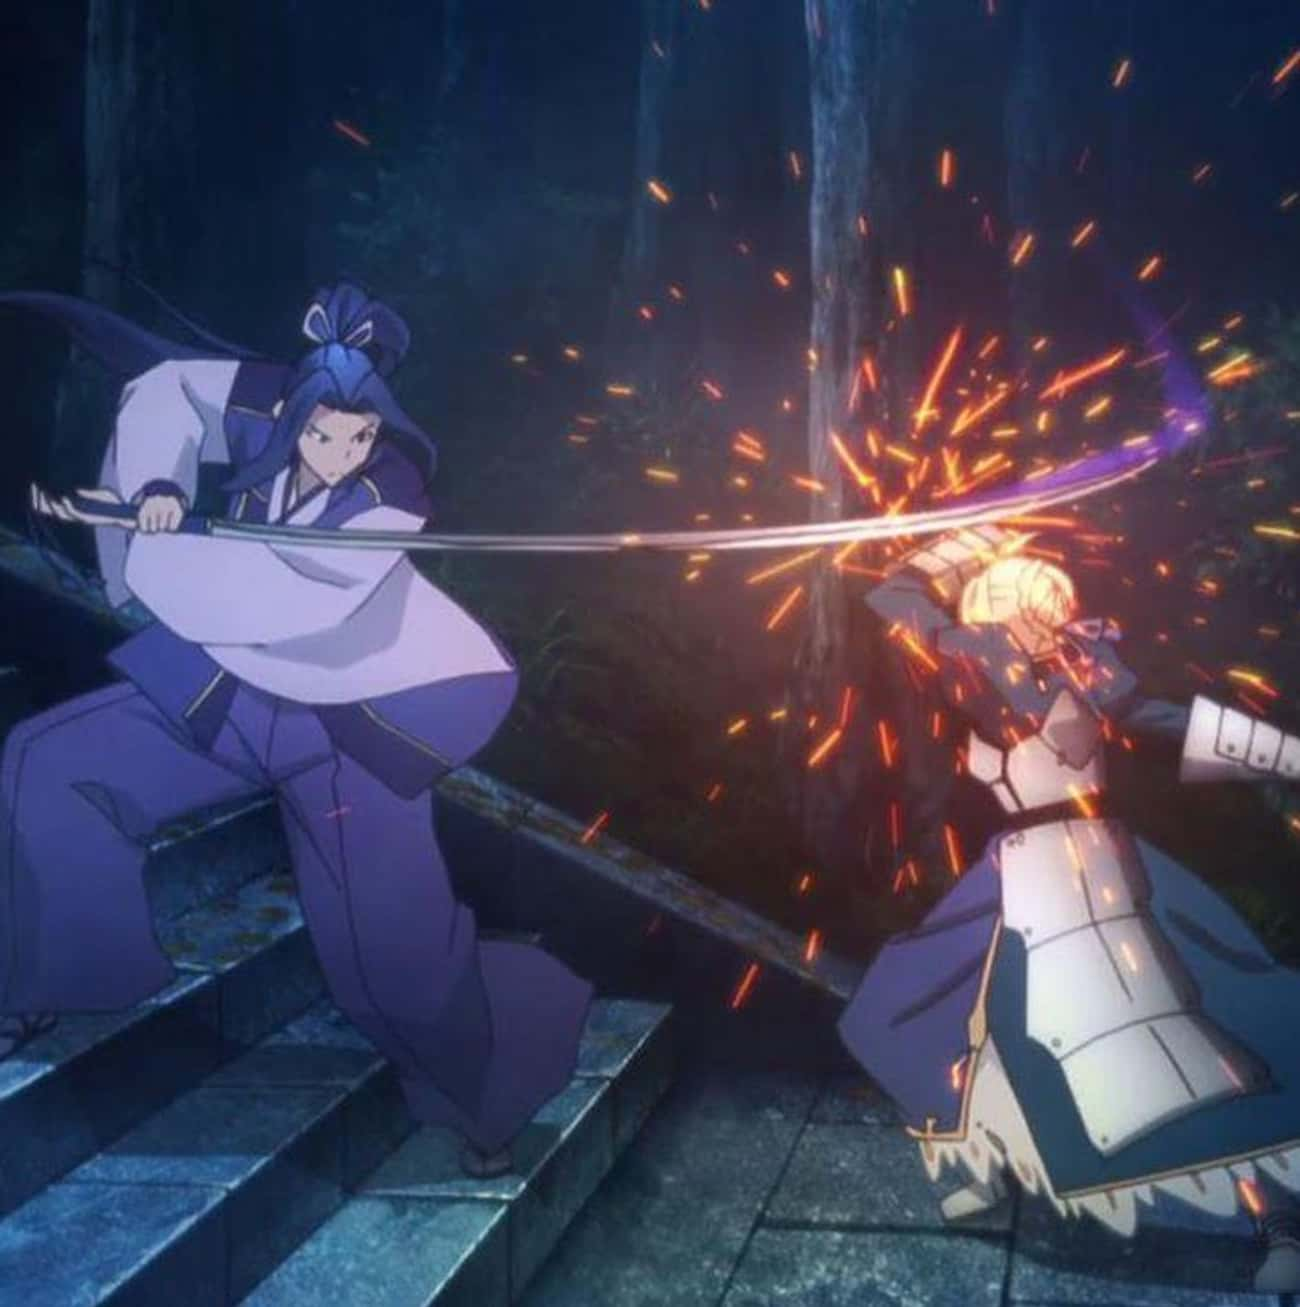 Saber Vs. Assassin - 'Fate/Stay Night: Unlimited Blade Works'